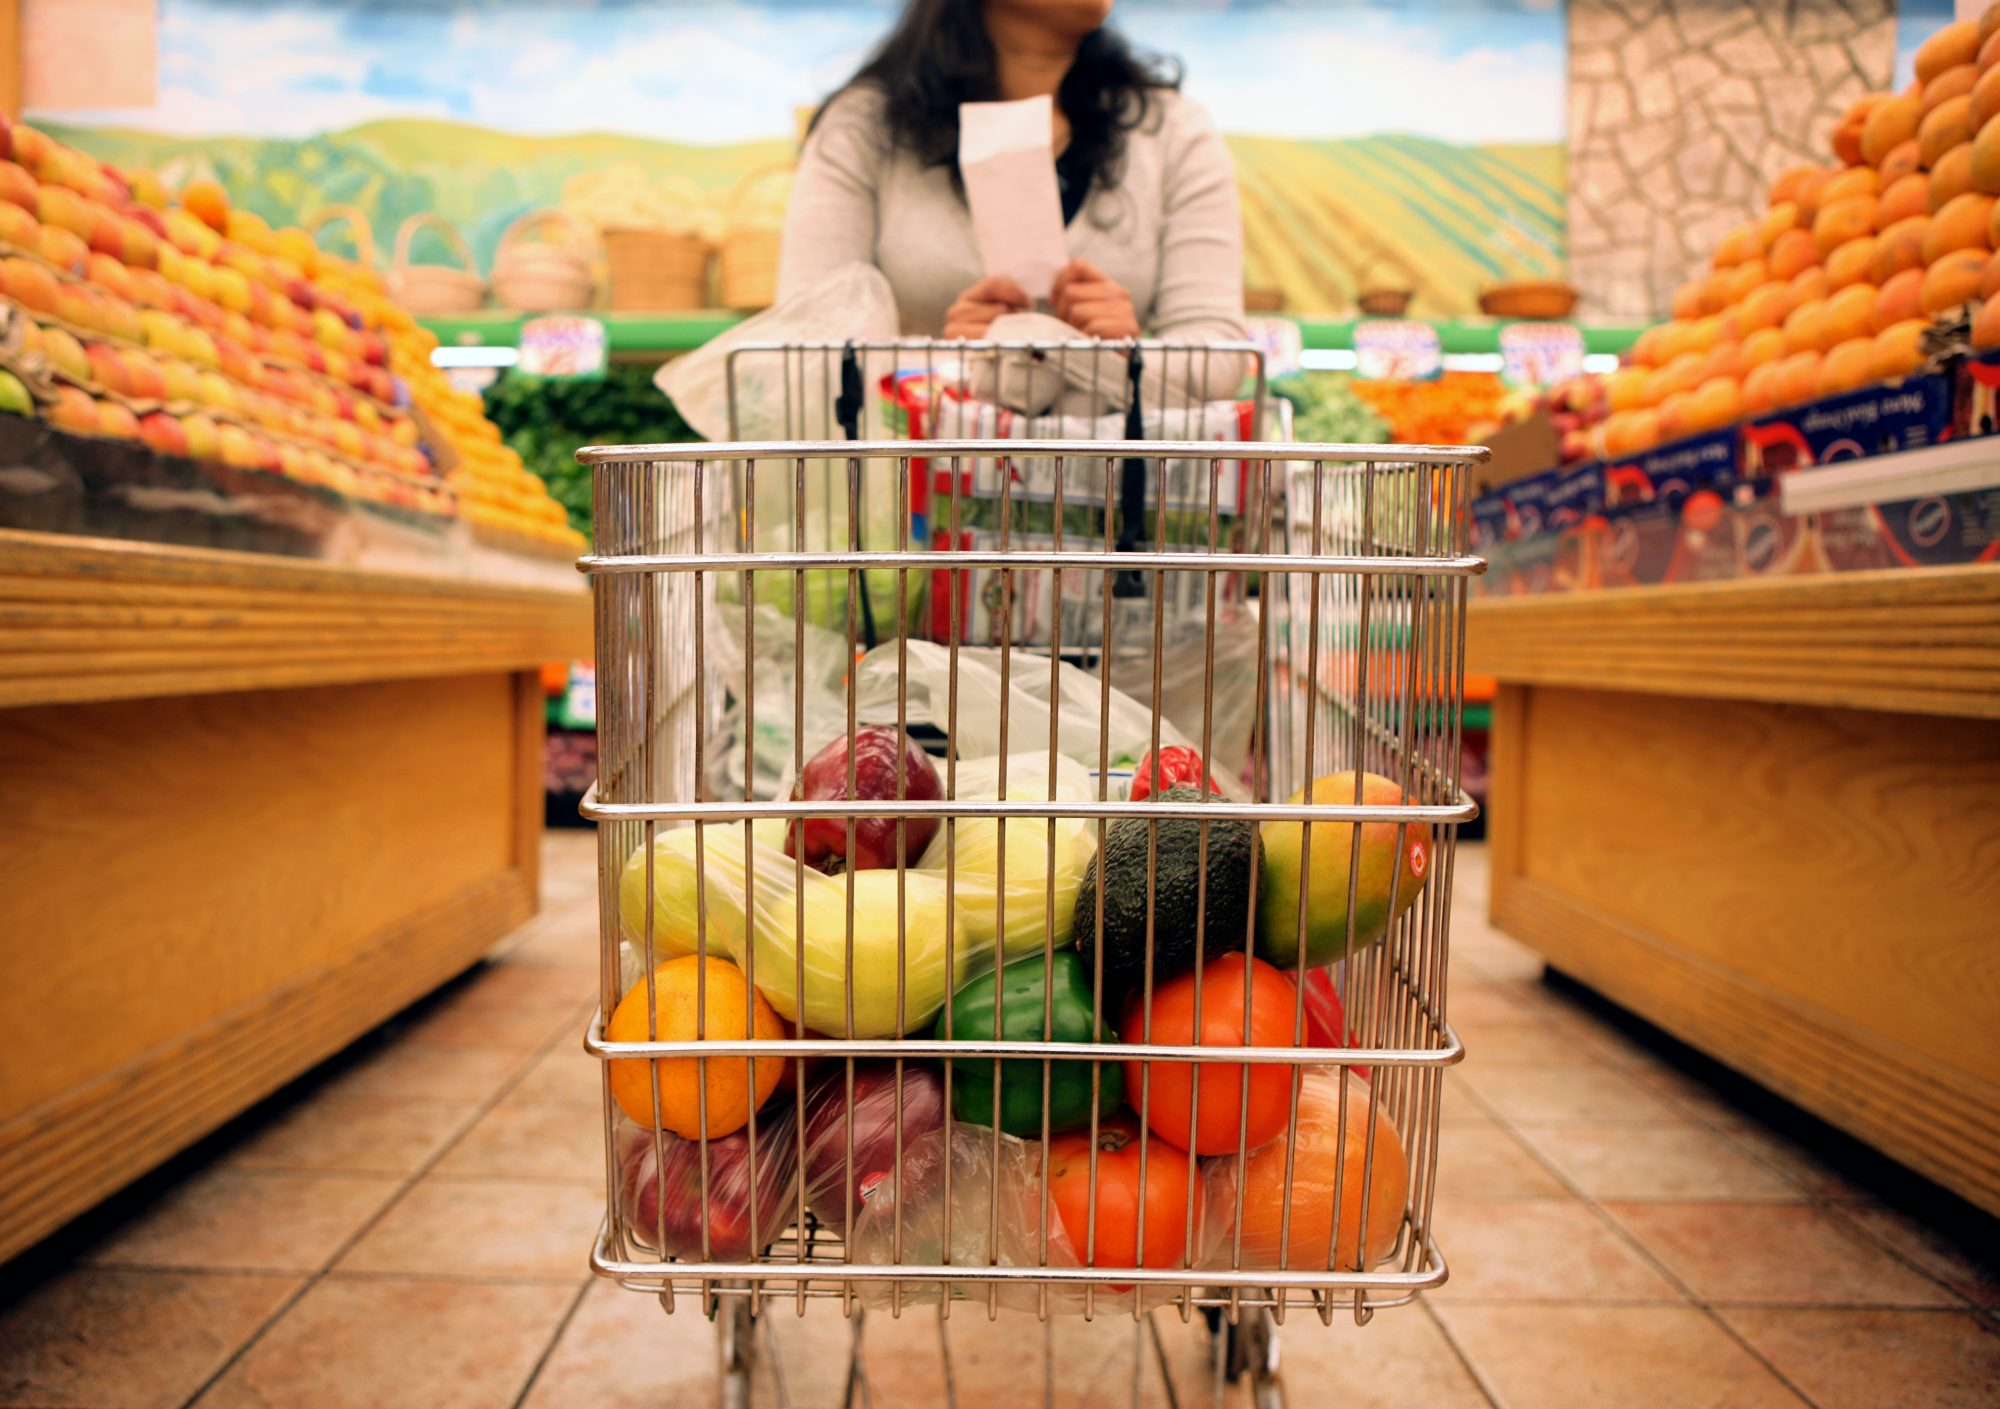 Woman and Grocery Cart